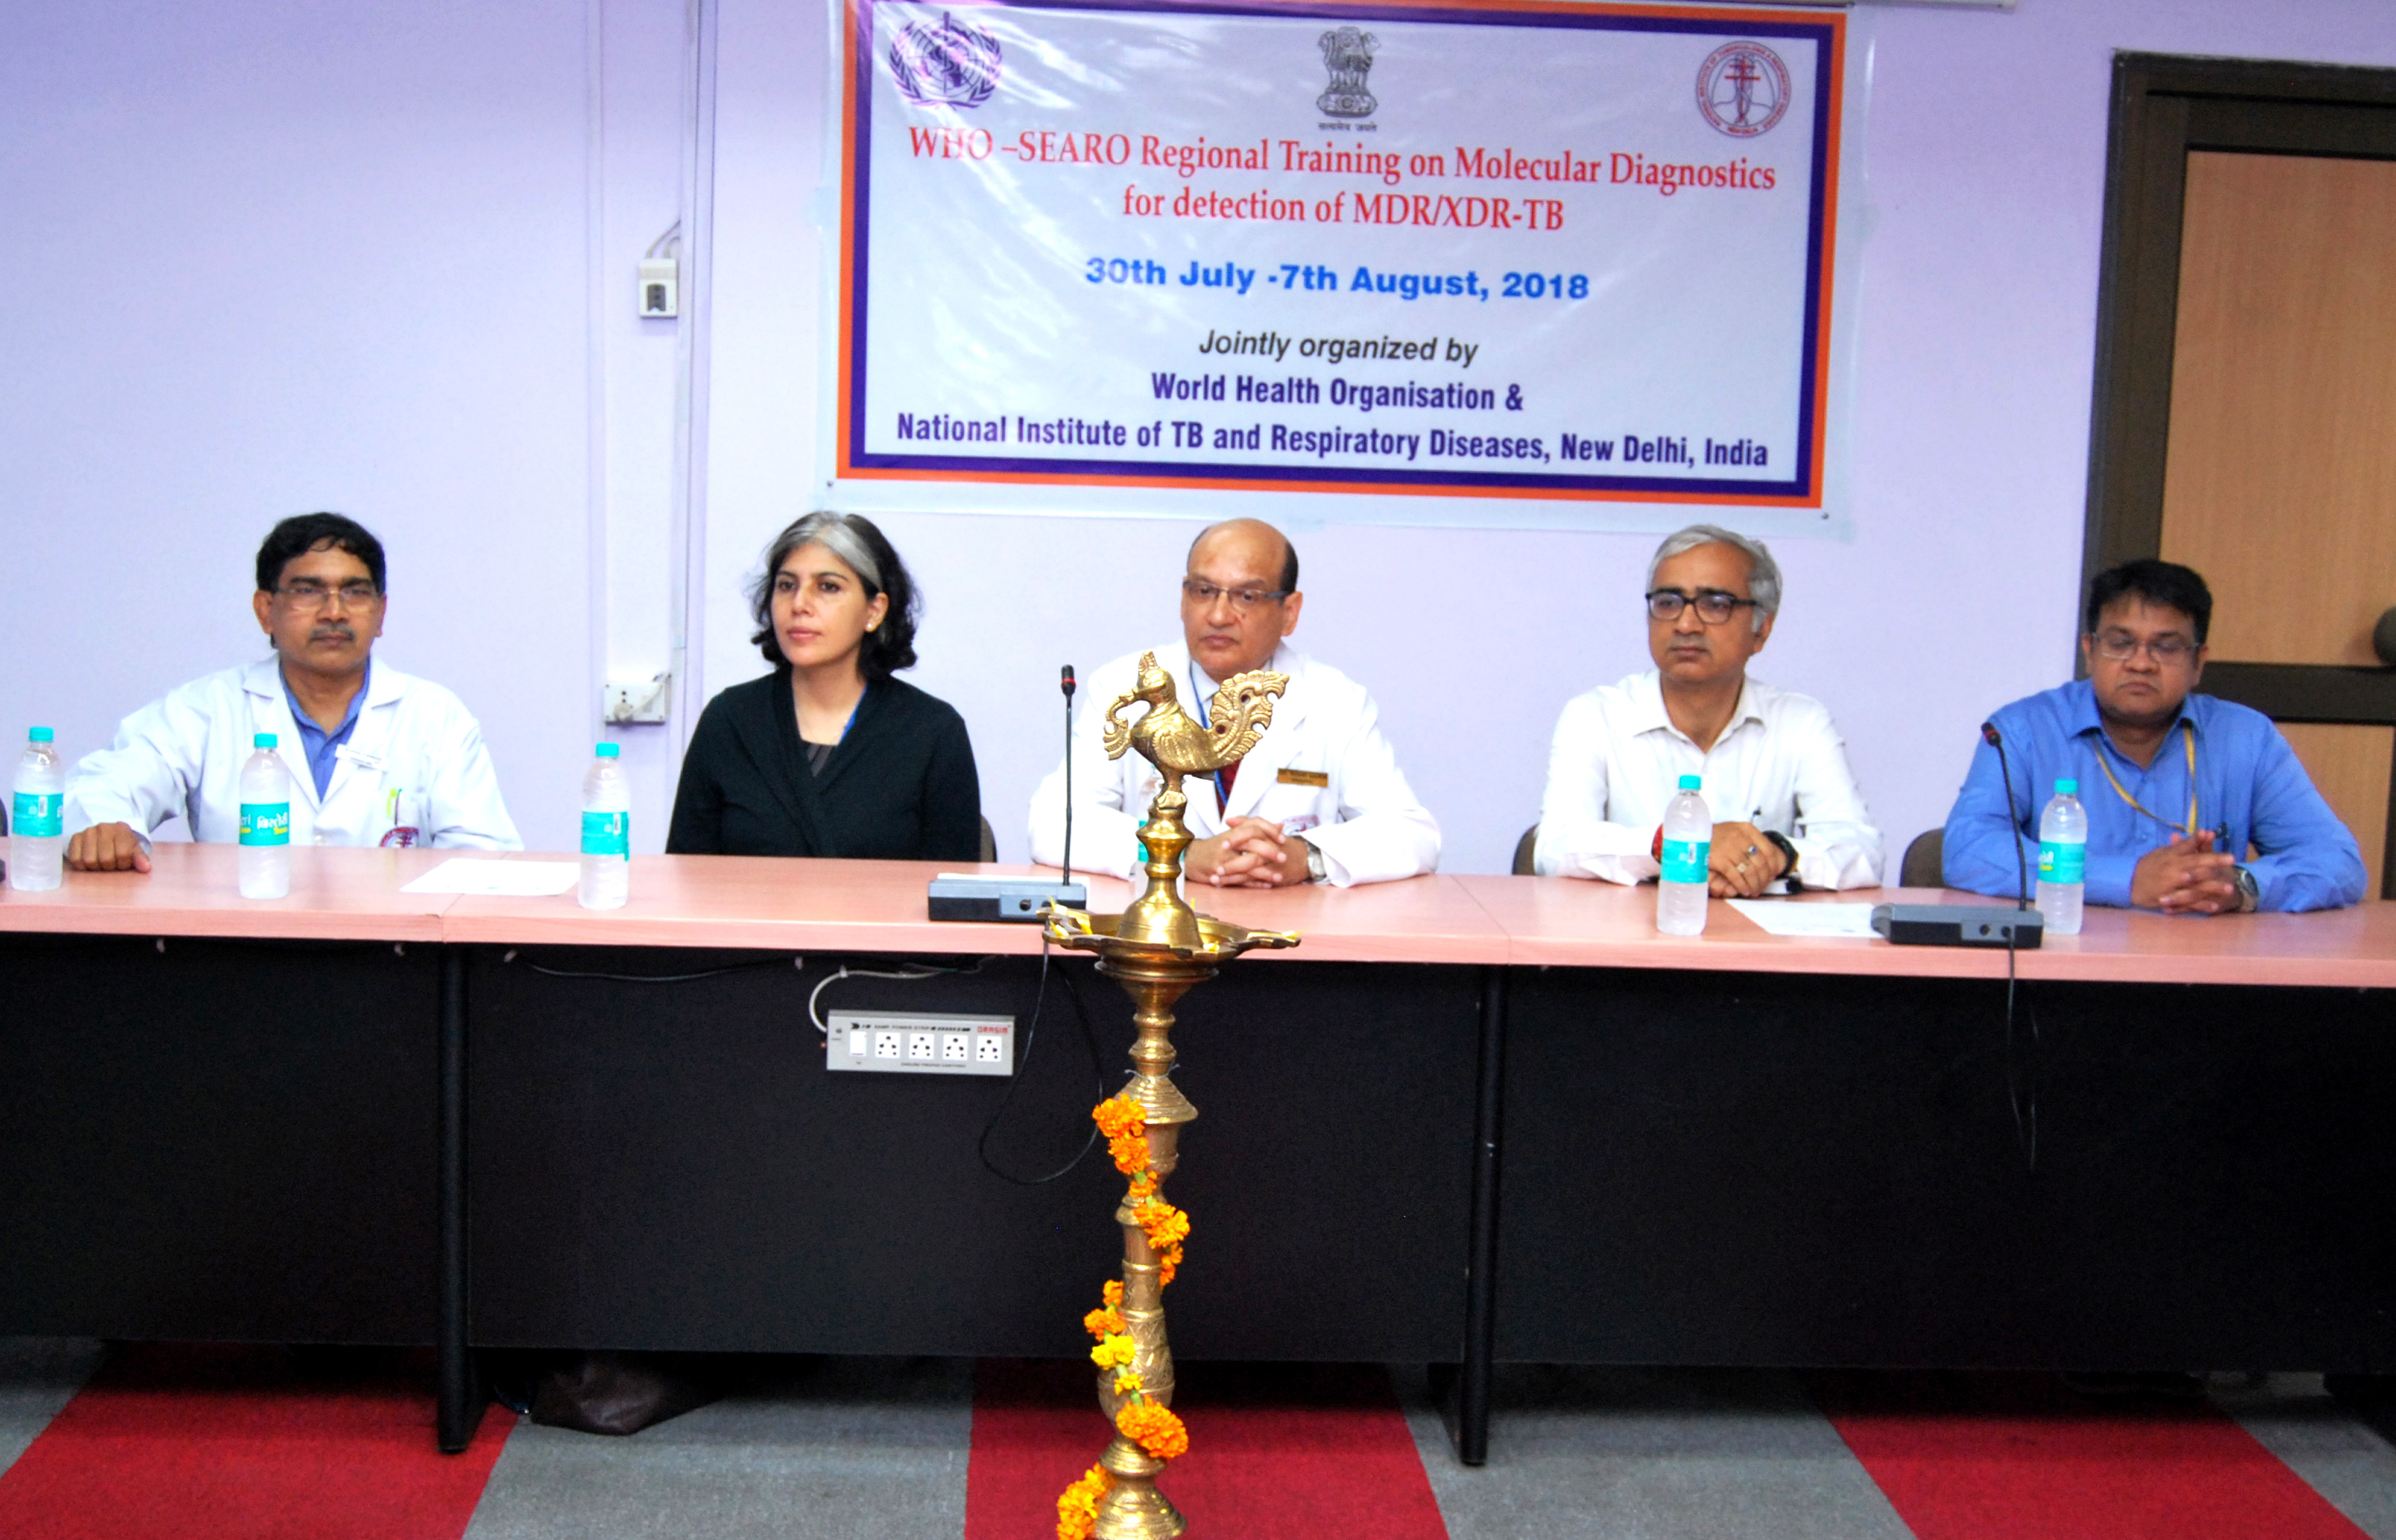 Inauguration_of_WHO_SEARO_training_30_July_2018_by_Dr_Mukta_Sharma_WHO